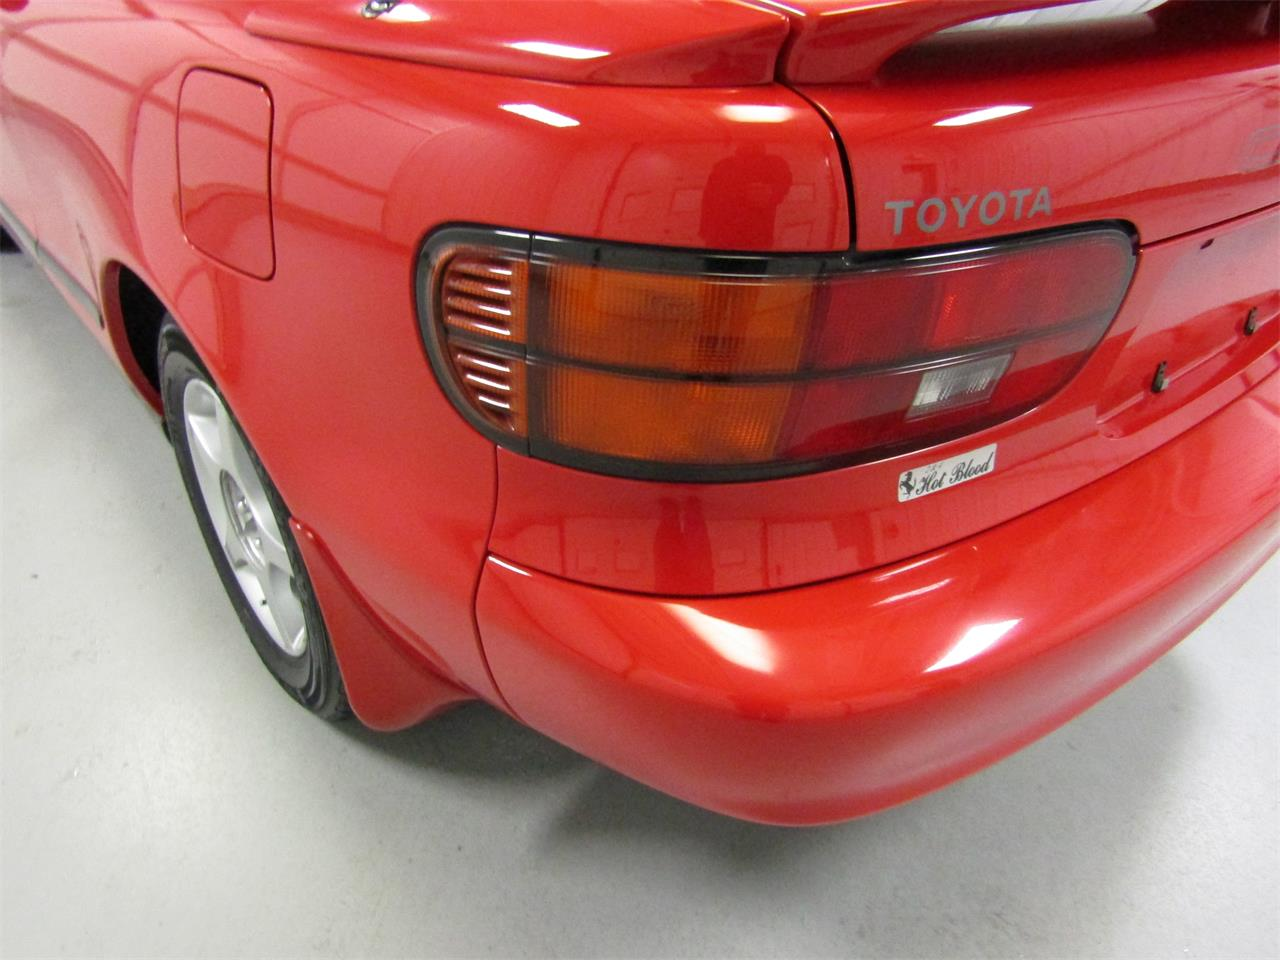 Large Picture of '91 Toyota Celica located in Christiansburg Virginia Offered by Duncan Imports & Classic Cars - OV71